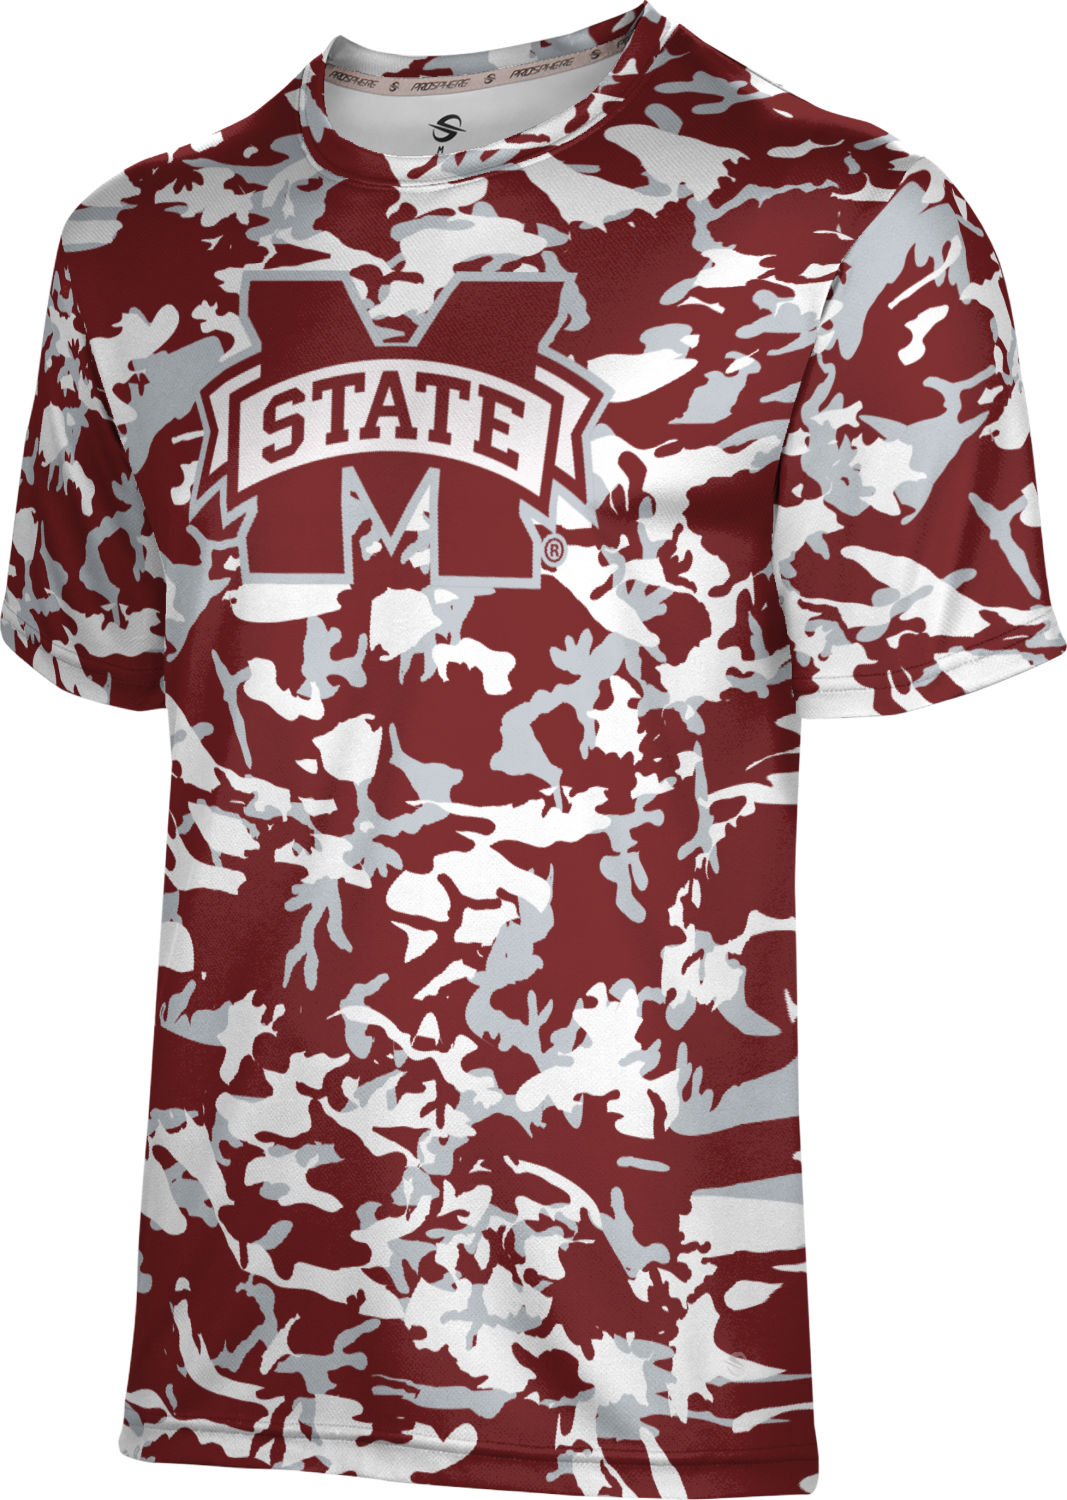 ProSphere Boys' Mississippi State University Camo Tech Tee